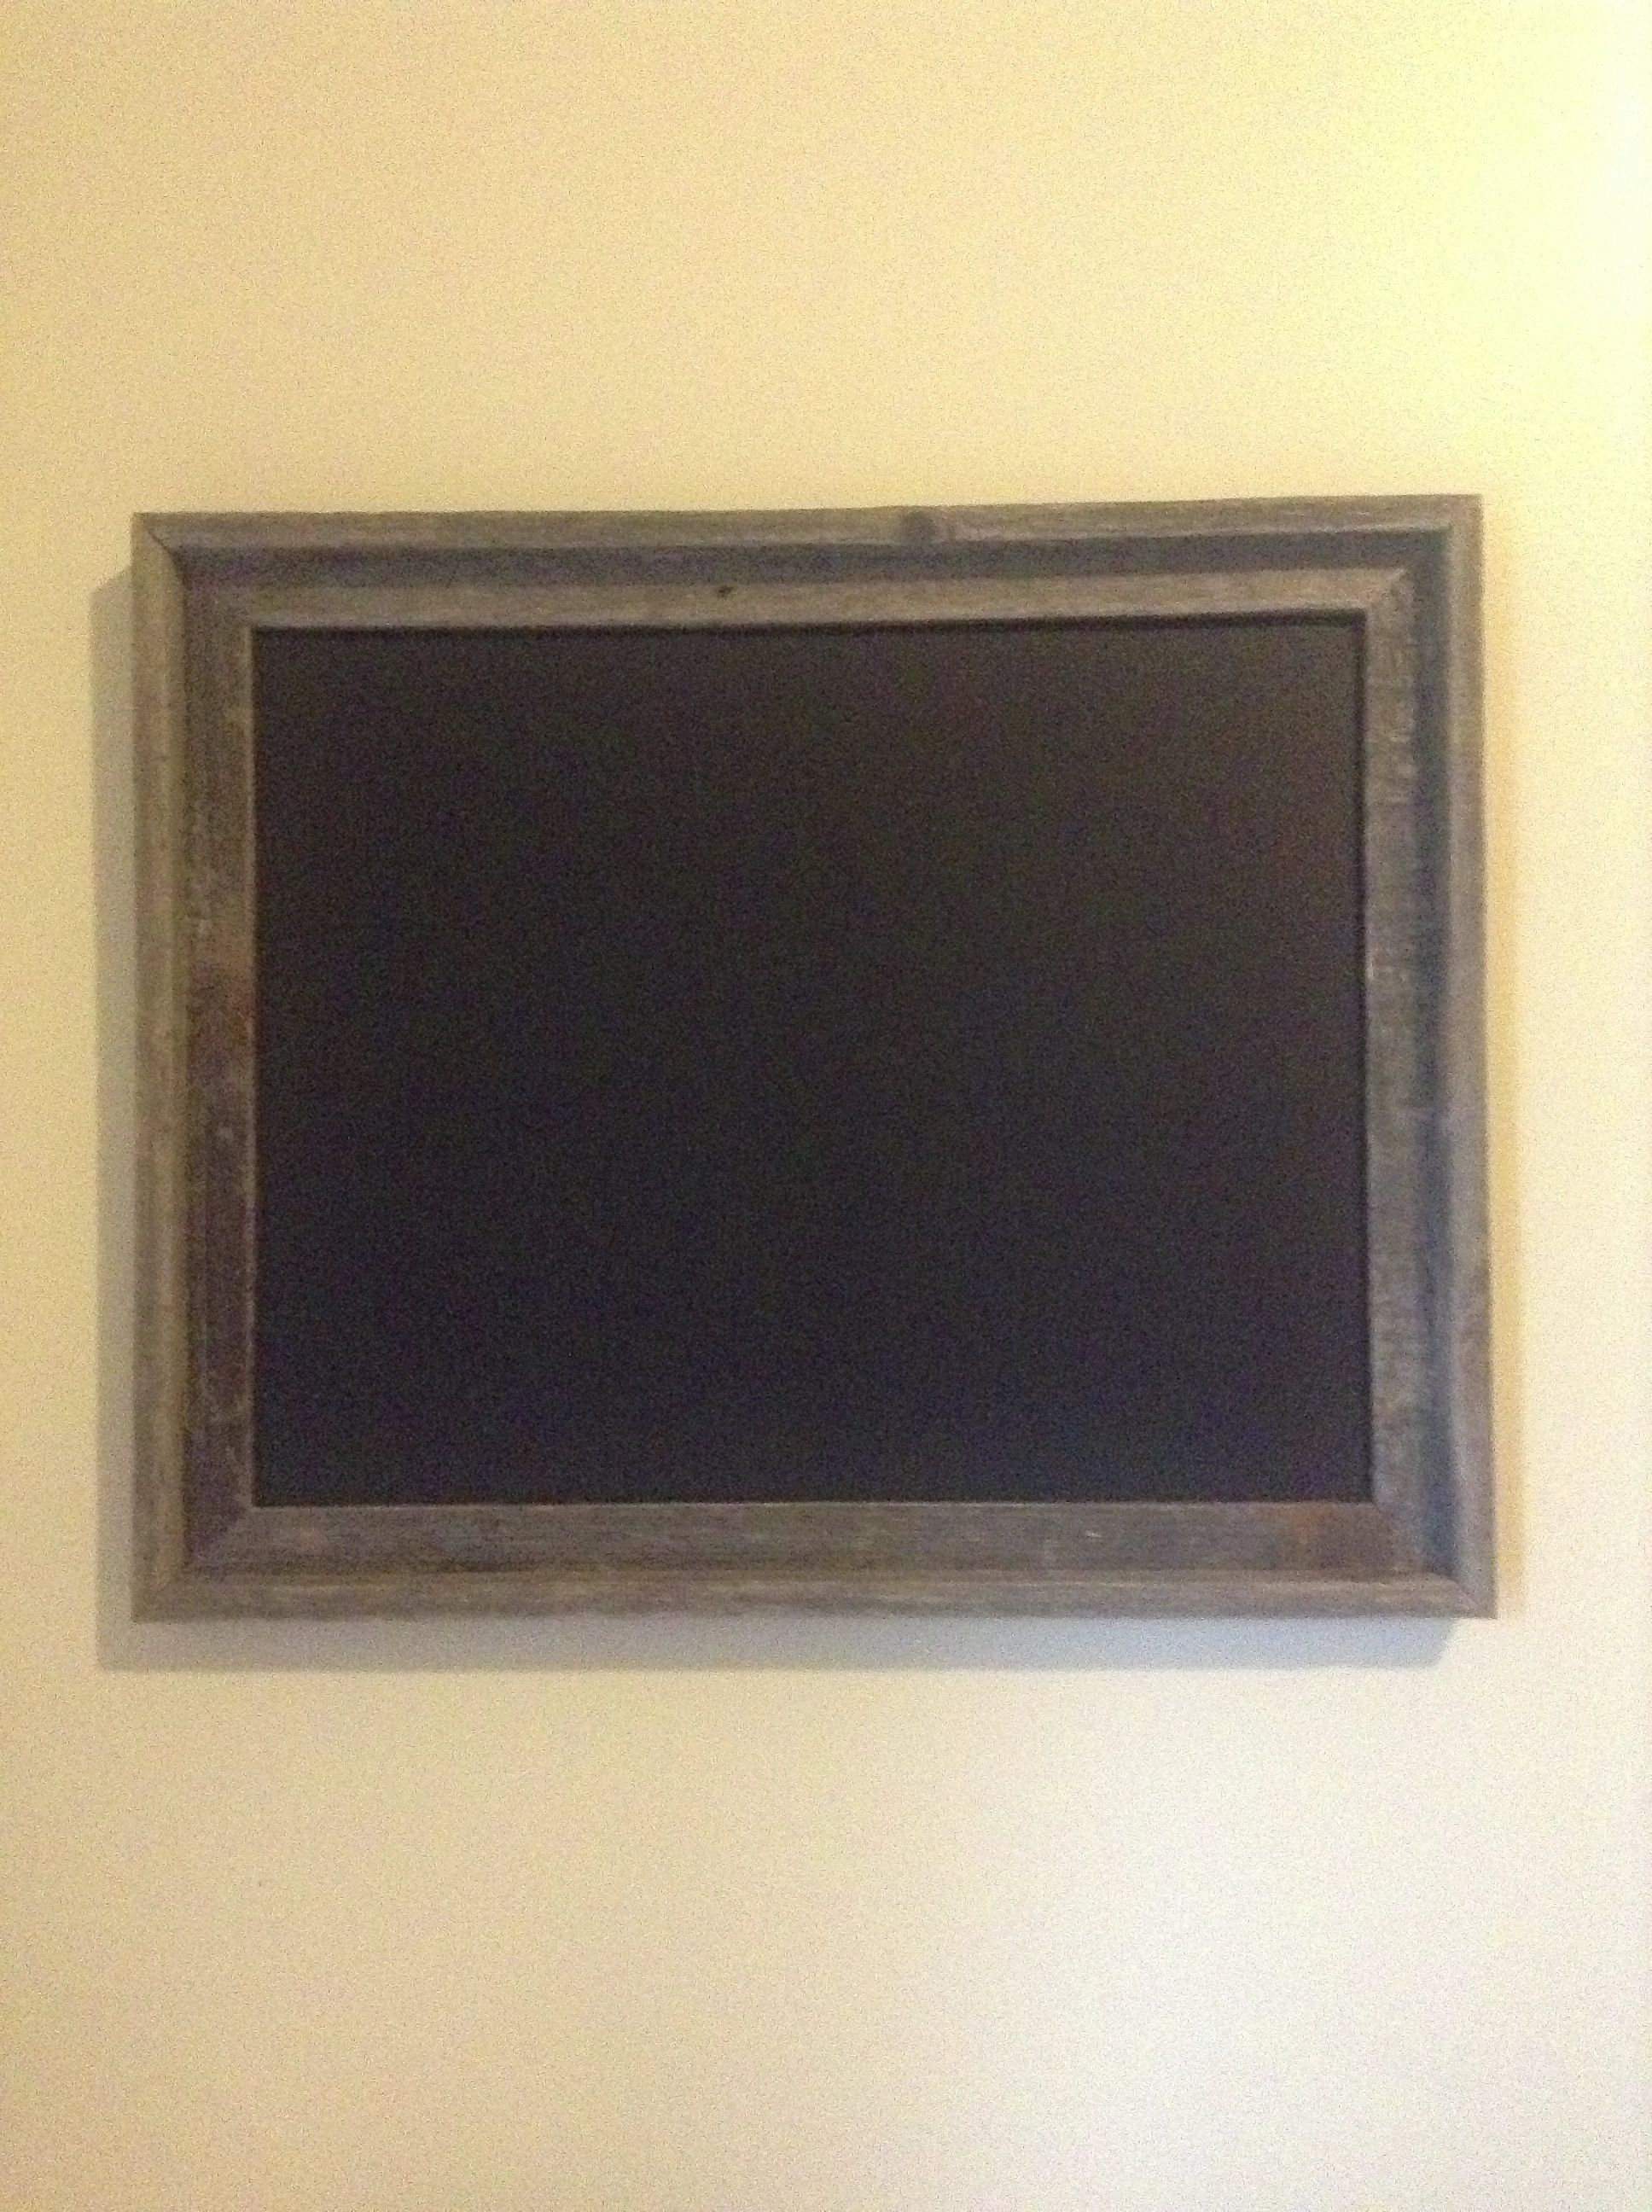 Easy Diy Chalkboard Frame Hobby Lobby Pressboard Painted With Chalkboard Paint It S Really That Easy Diy Chalkboard Easy Diy Chalkboard Paint